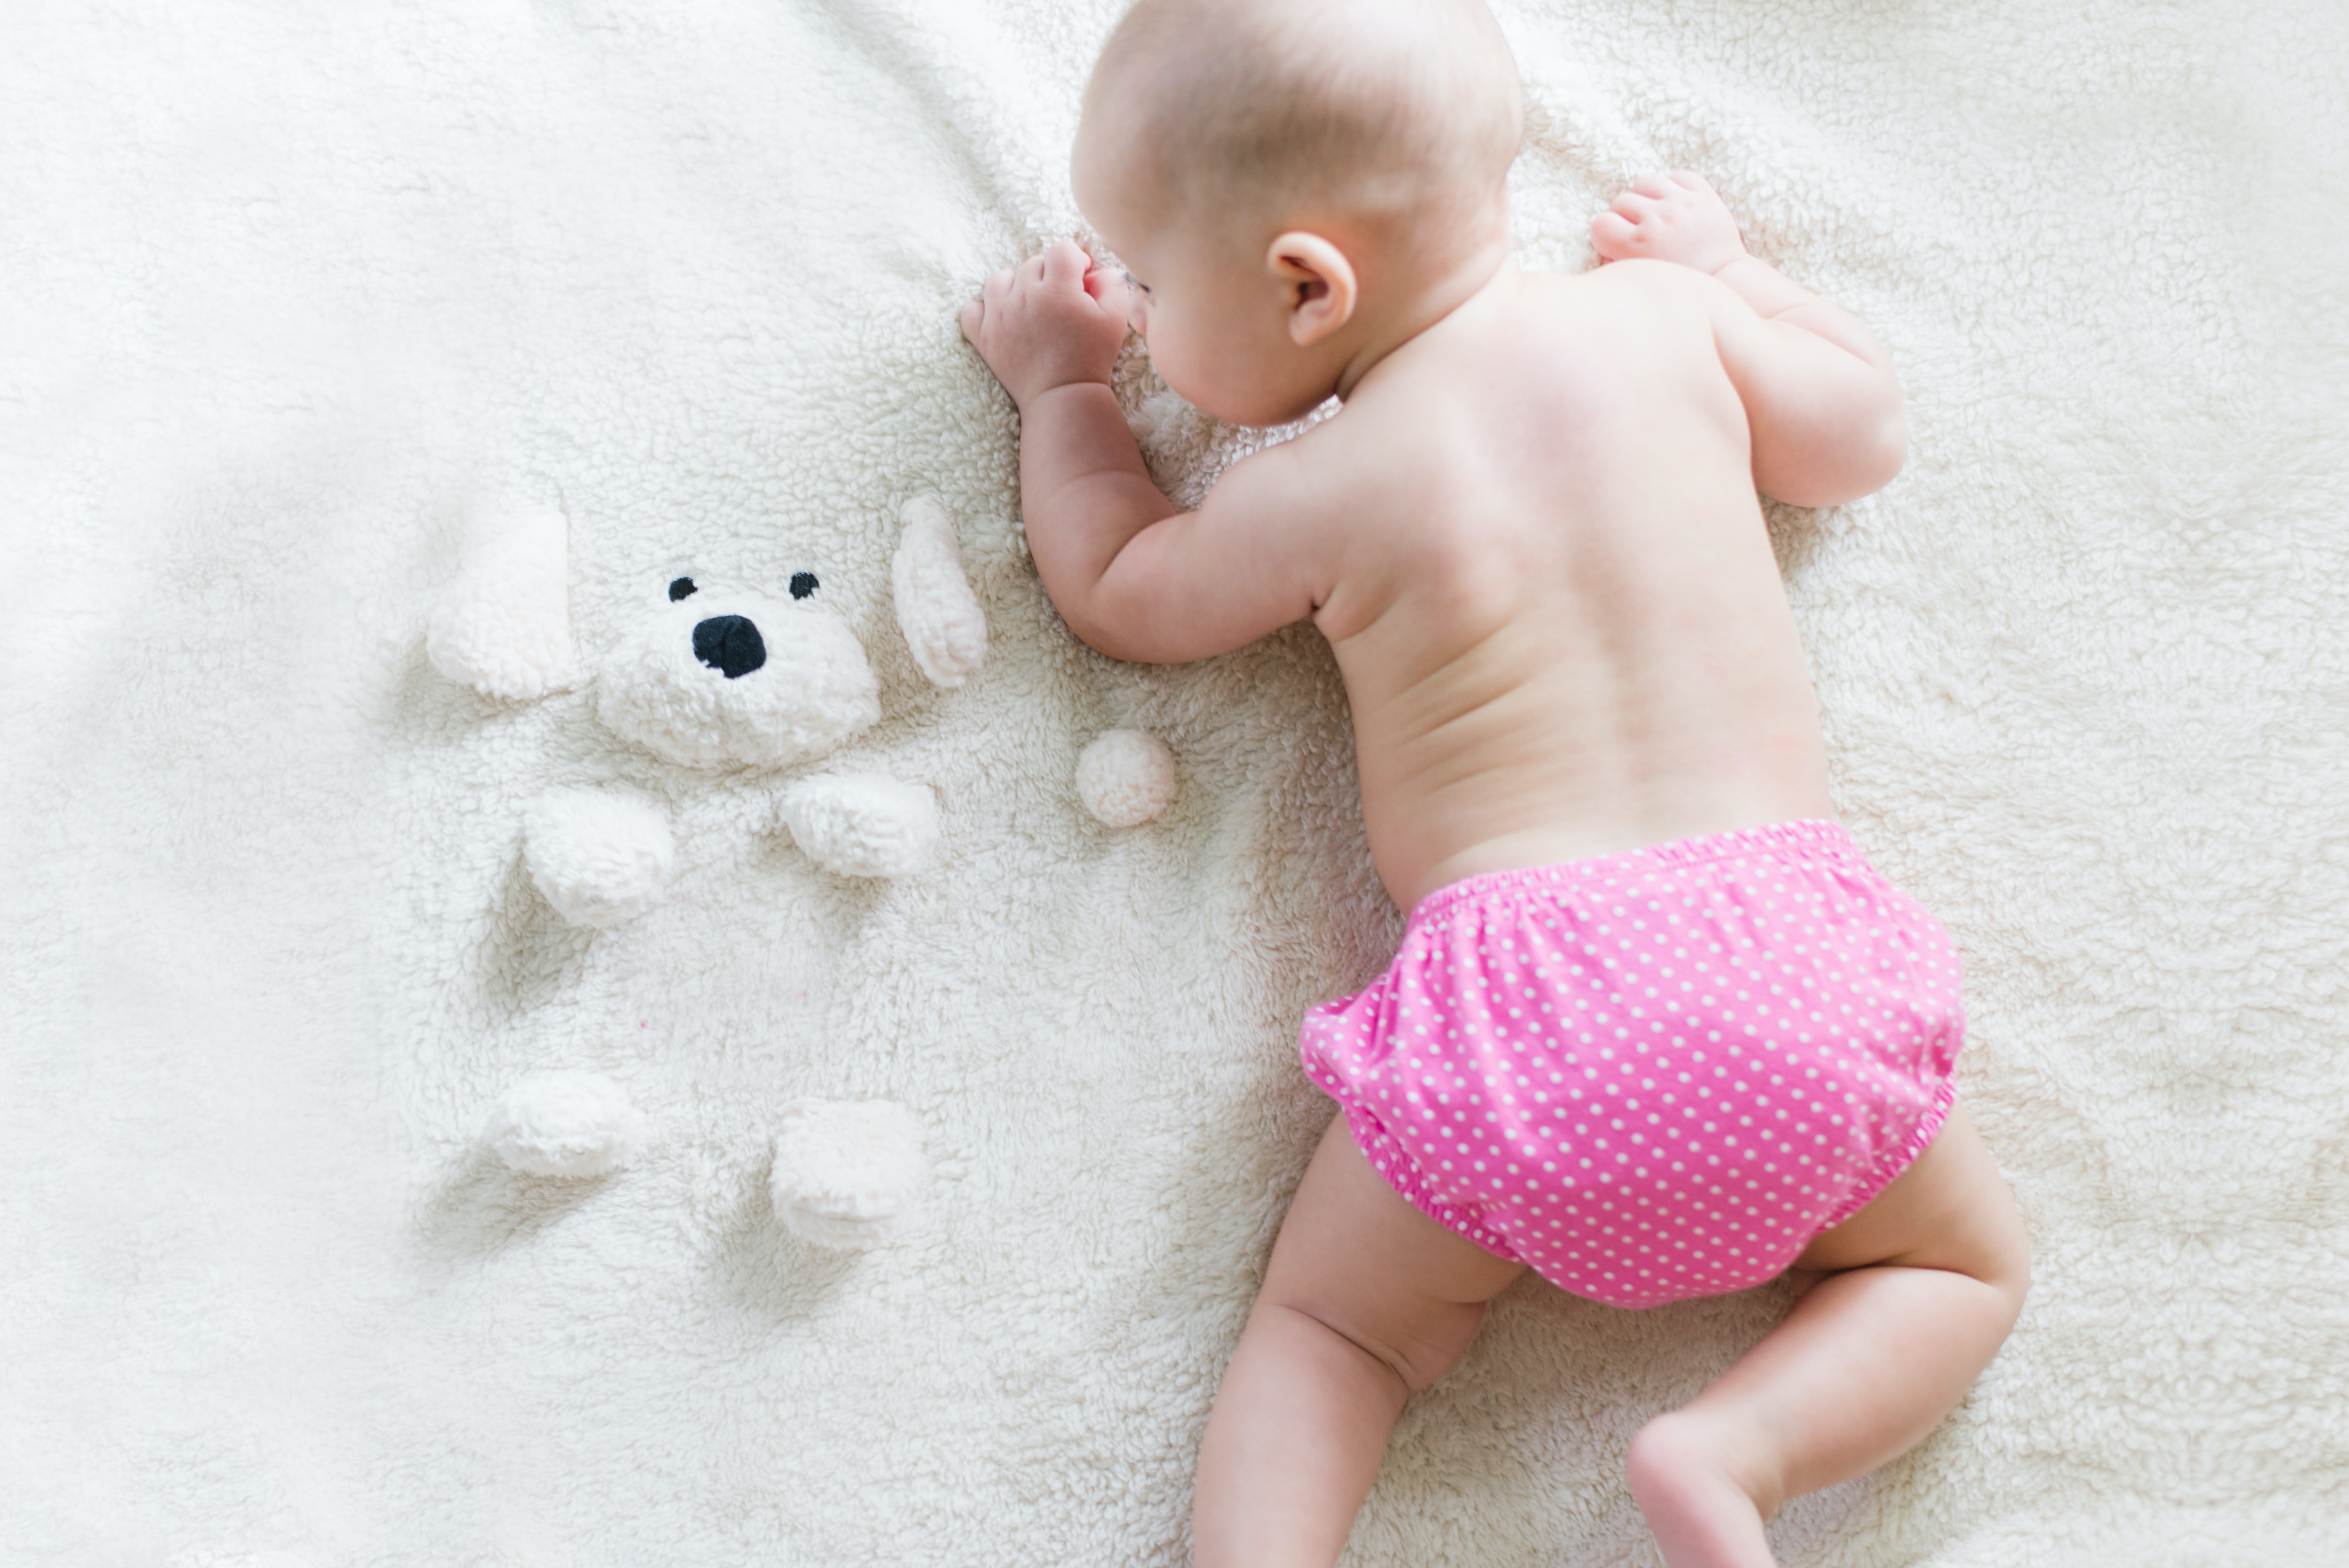 A baby lying on her belly in pink polka dot bottoms.